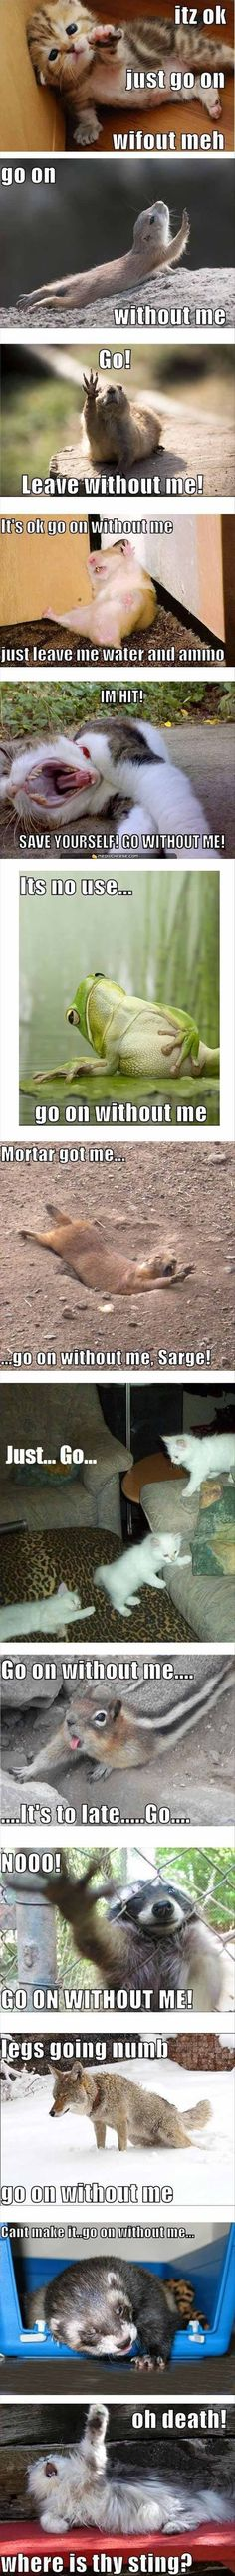 Attack Of The Funny Animals - 45 Pics